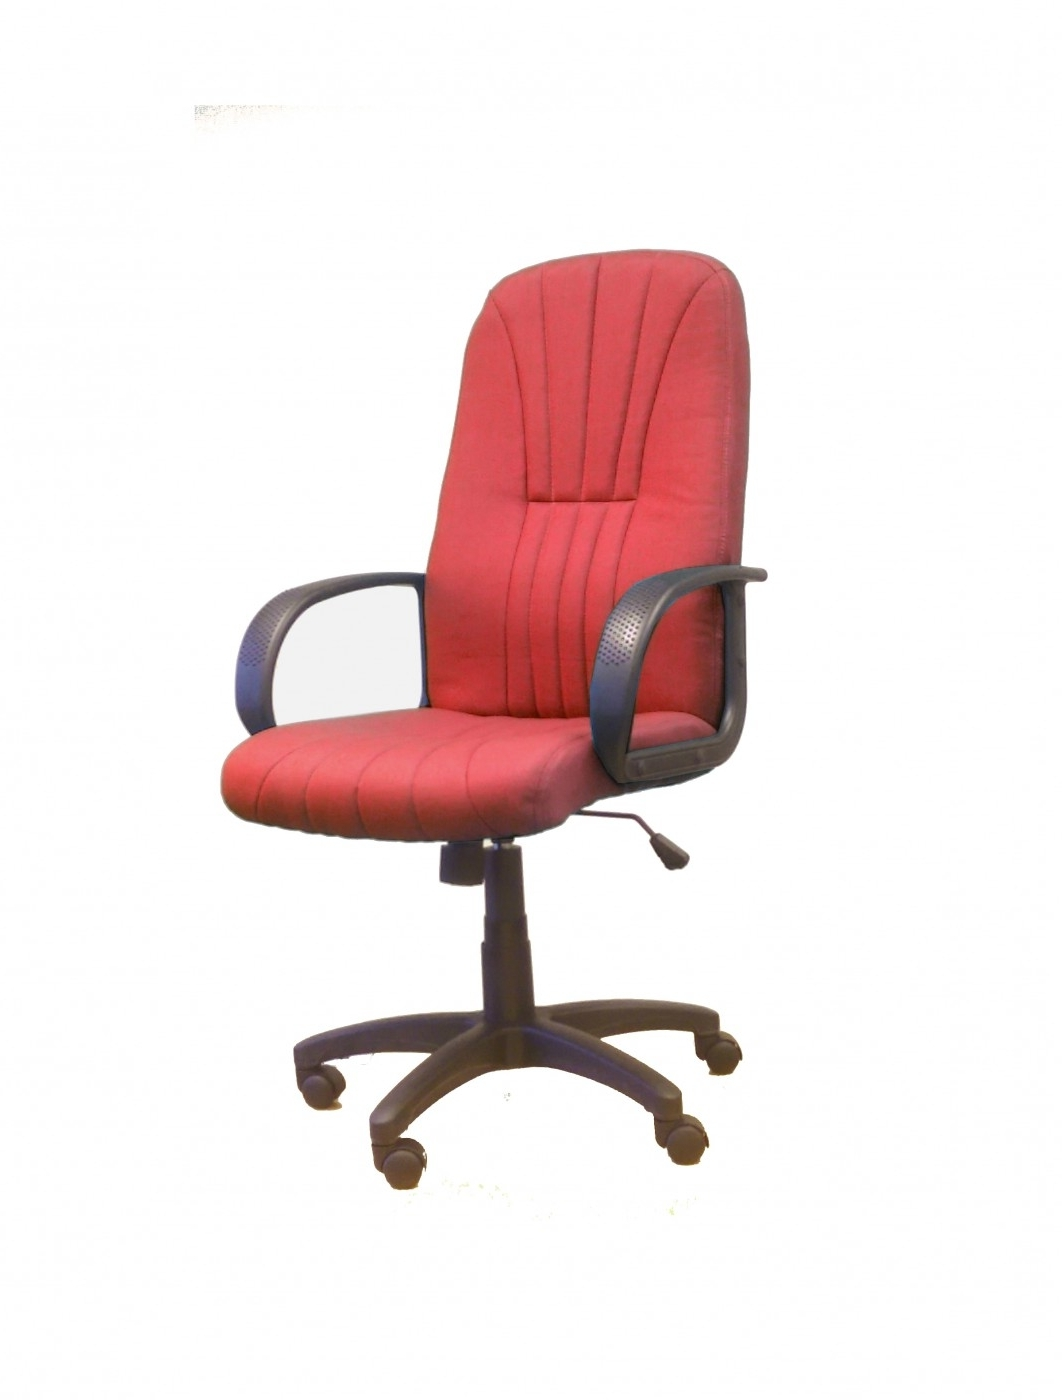 Famous Furniture : Executive Office Chair Ergonomic Office Chair' Big And In Executive Office Chairs Without Wheels (View 16 of 20)